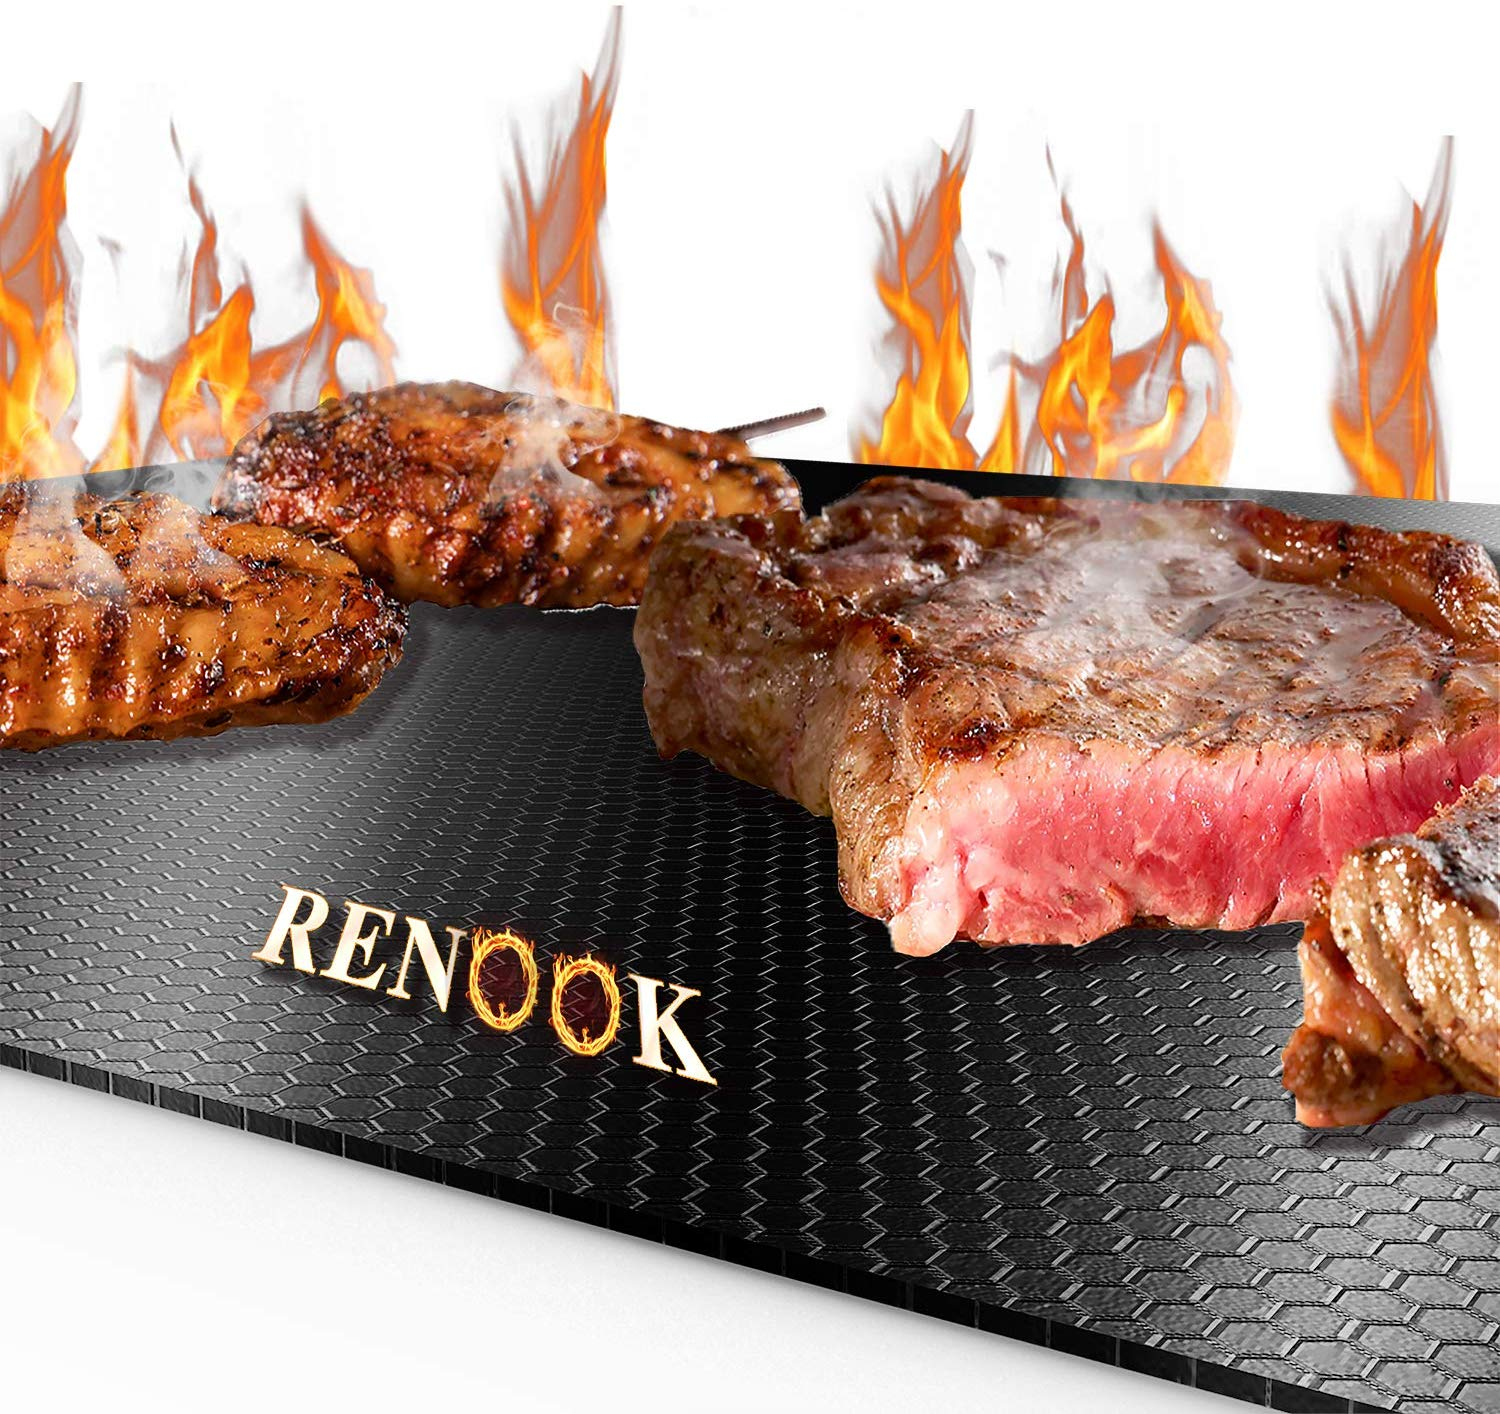 RENOOK 600 Degree Non-Stick Grill Mat, Set of 2